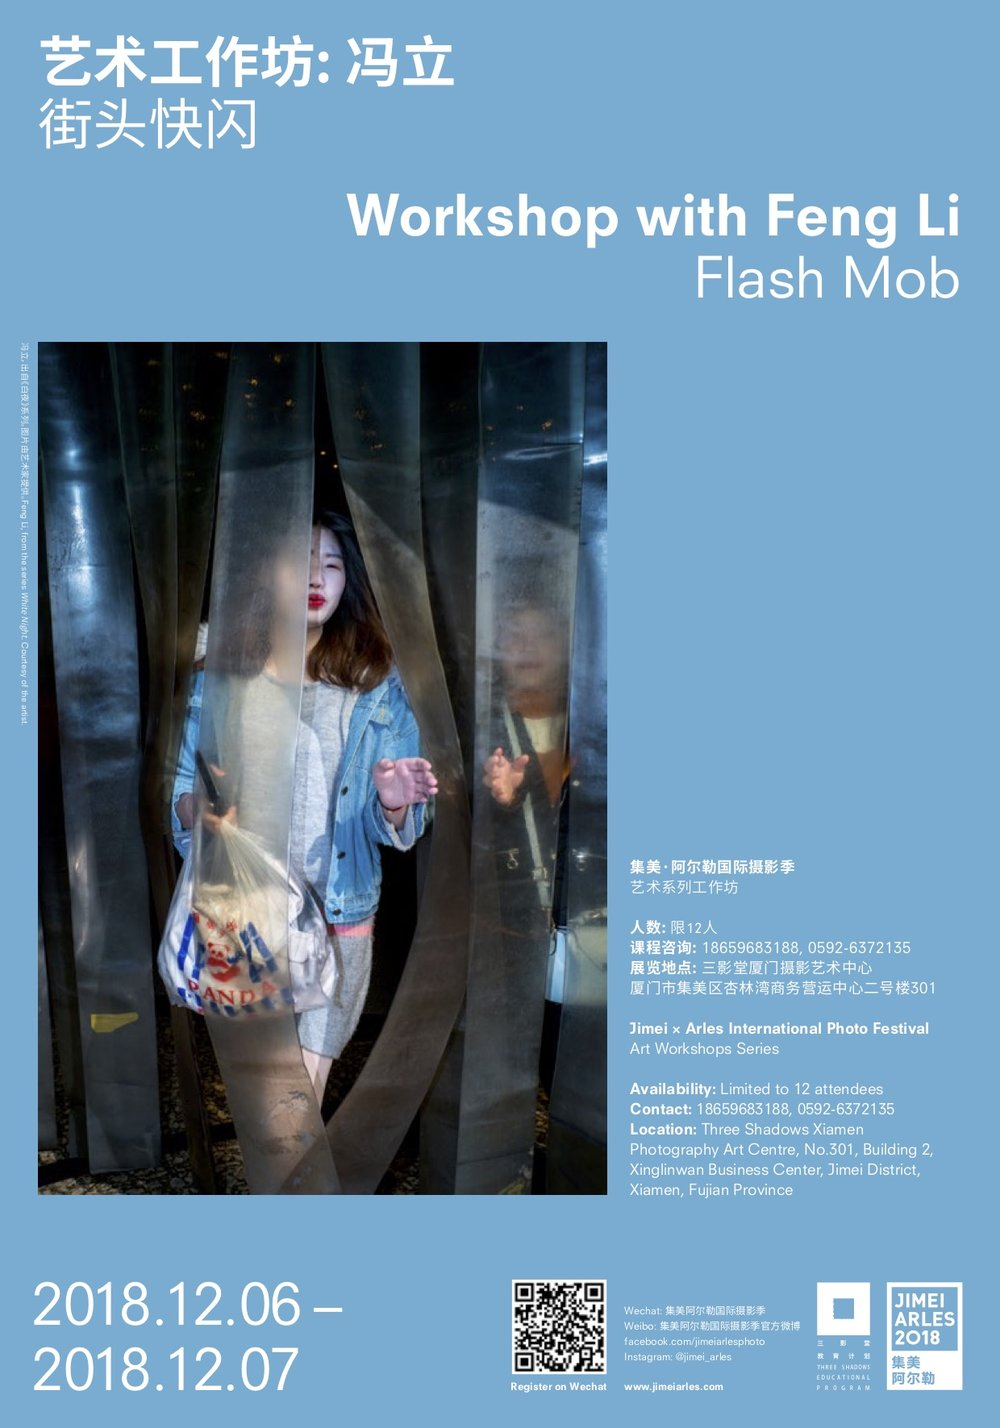 JIMEIARLES_Workshop+Poster_Digital_Feng_Li.jpg